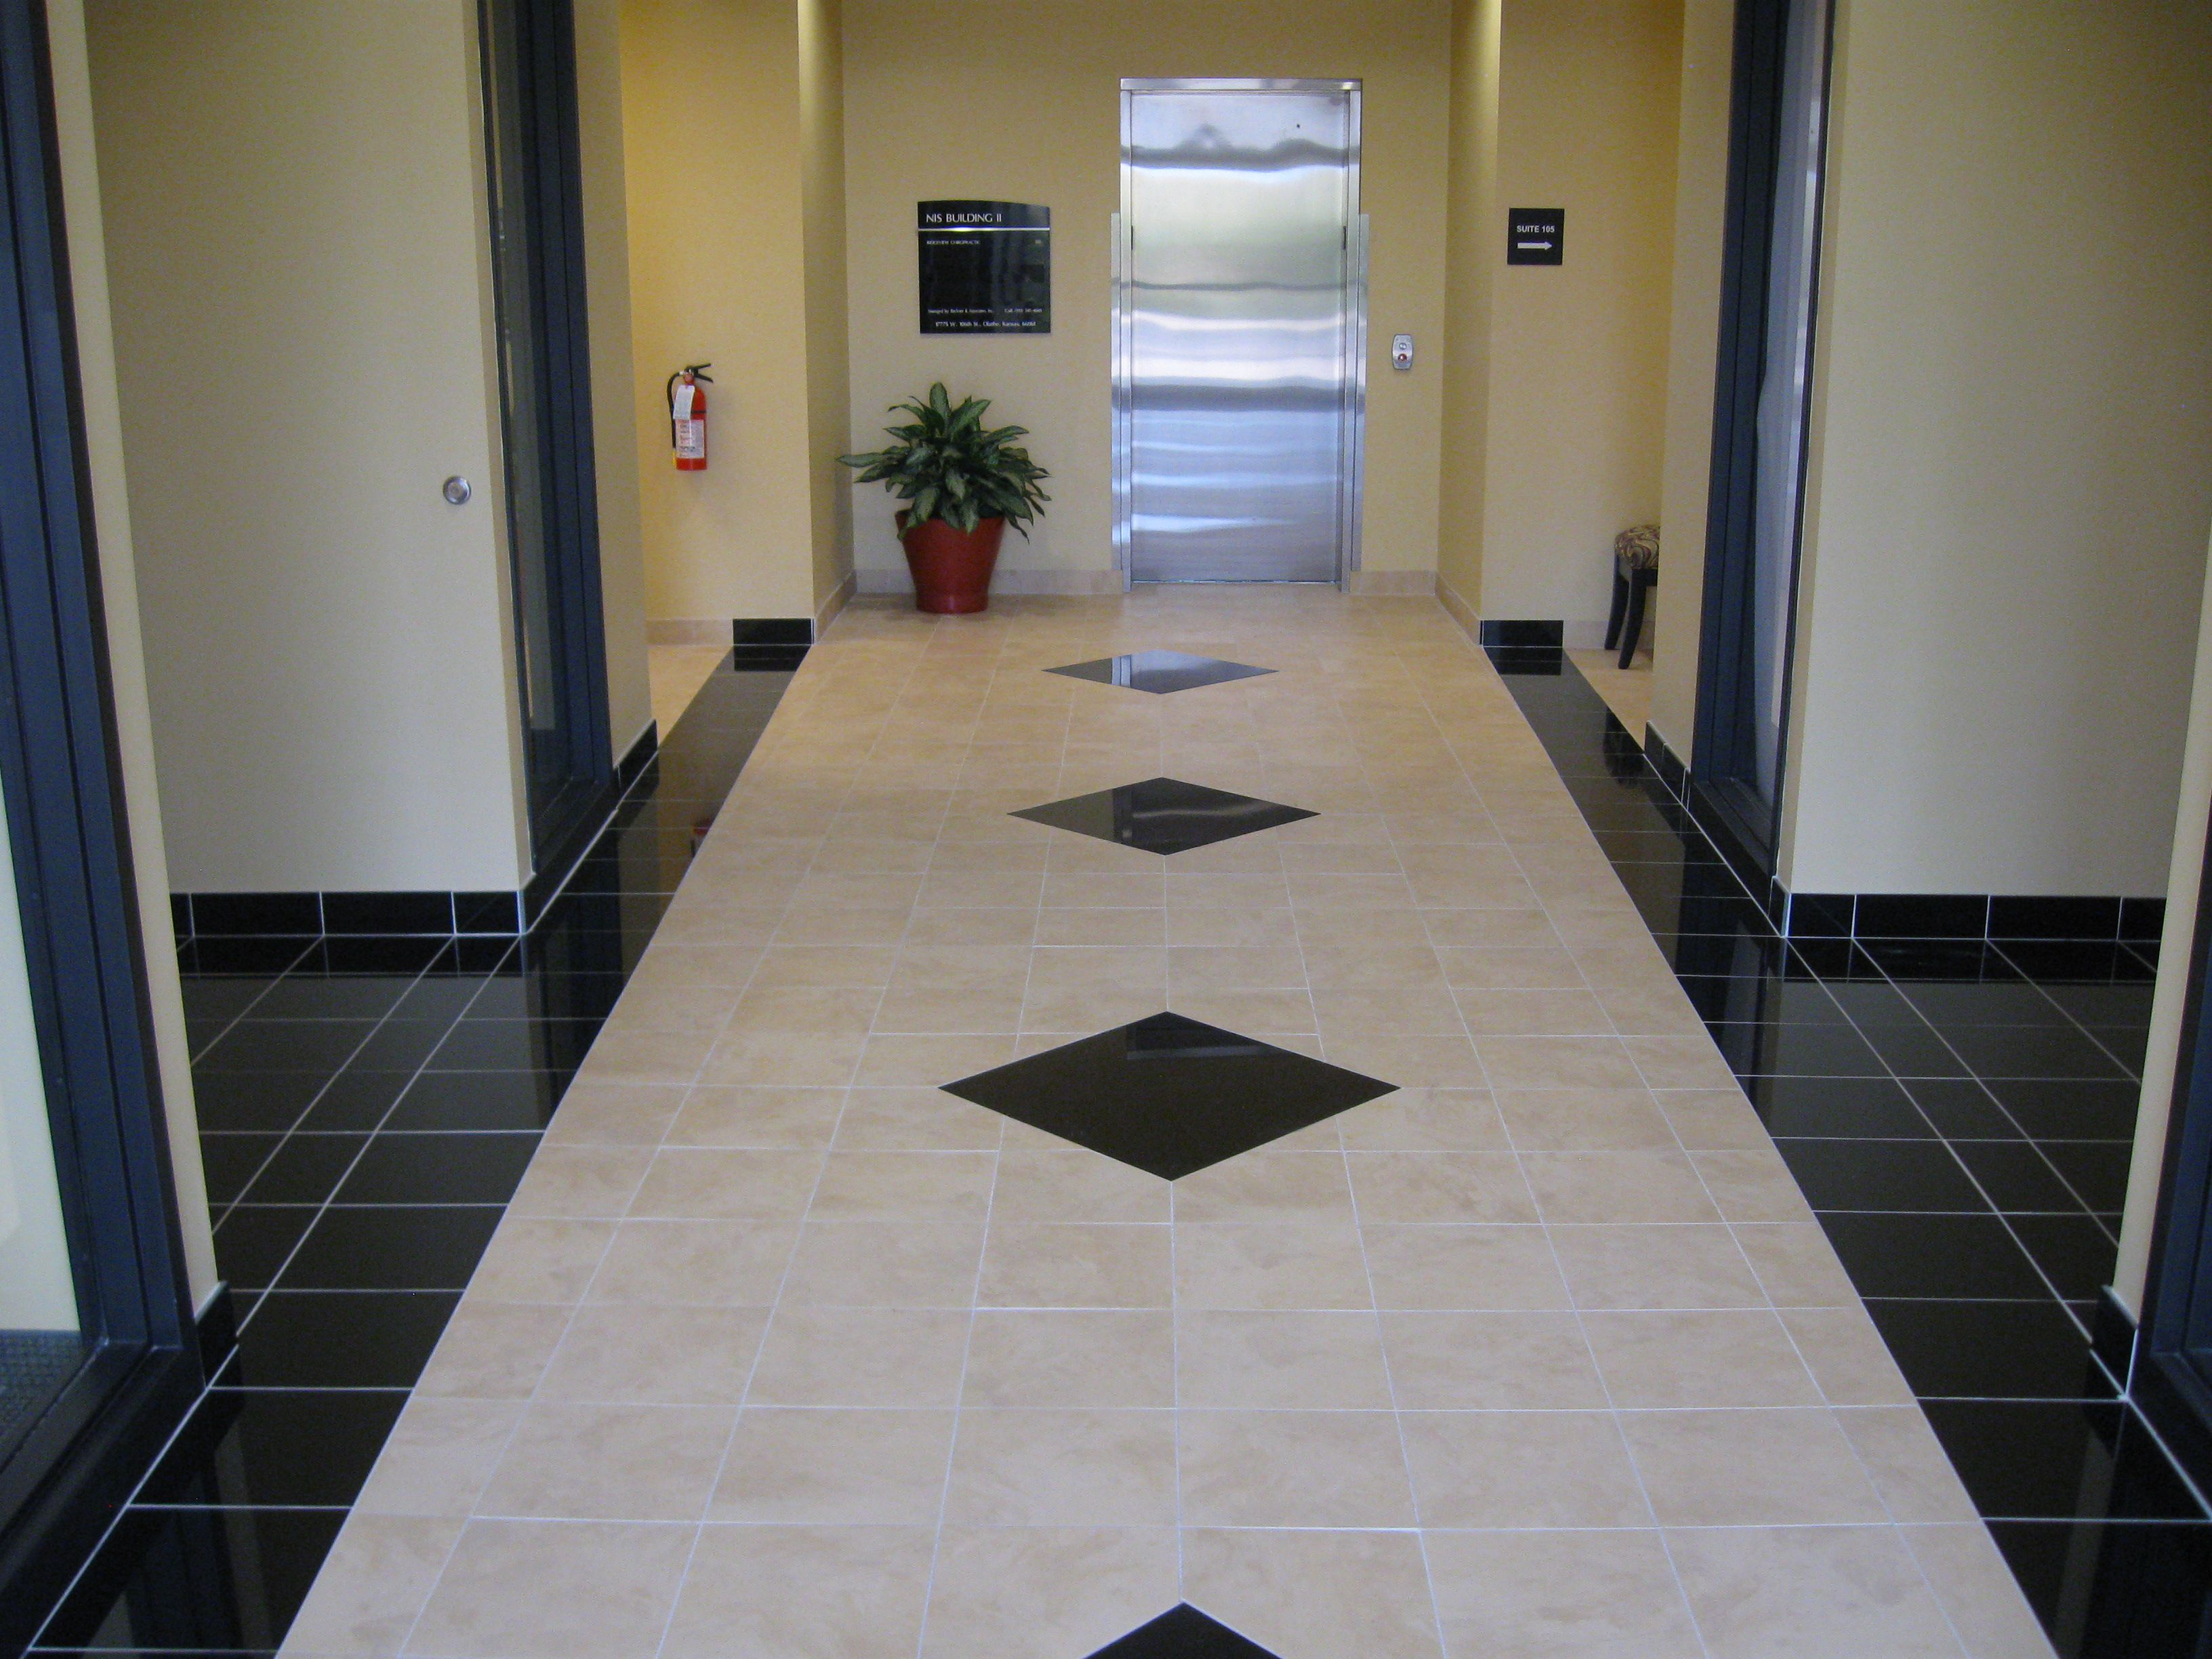 Floor Tile Workers : Commercial porcelain floor tile patterns job photos